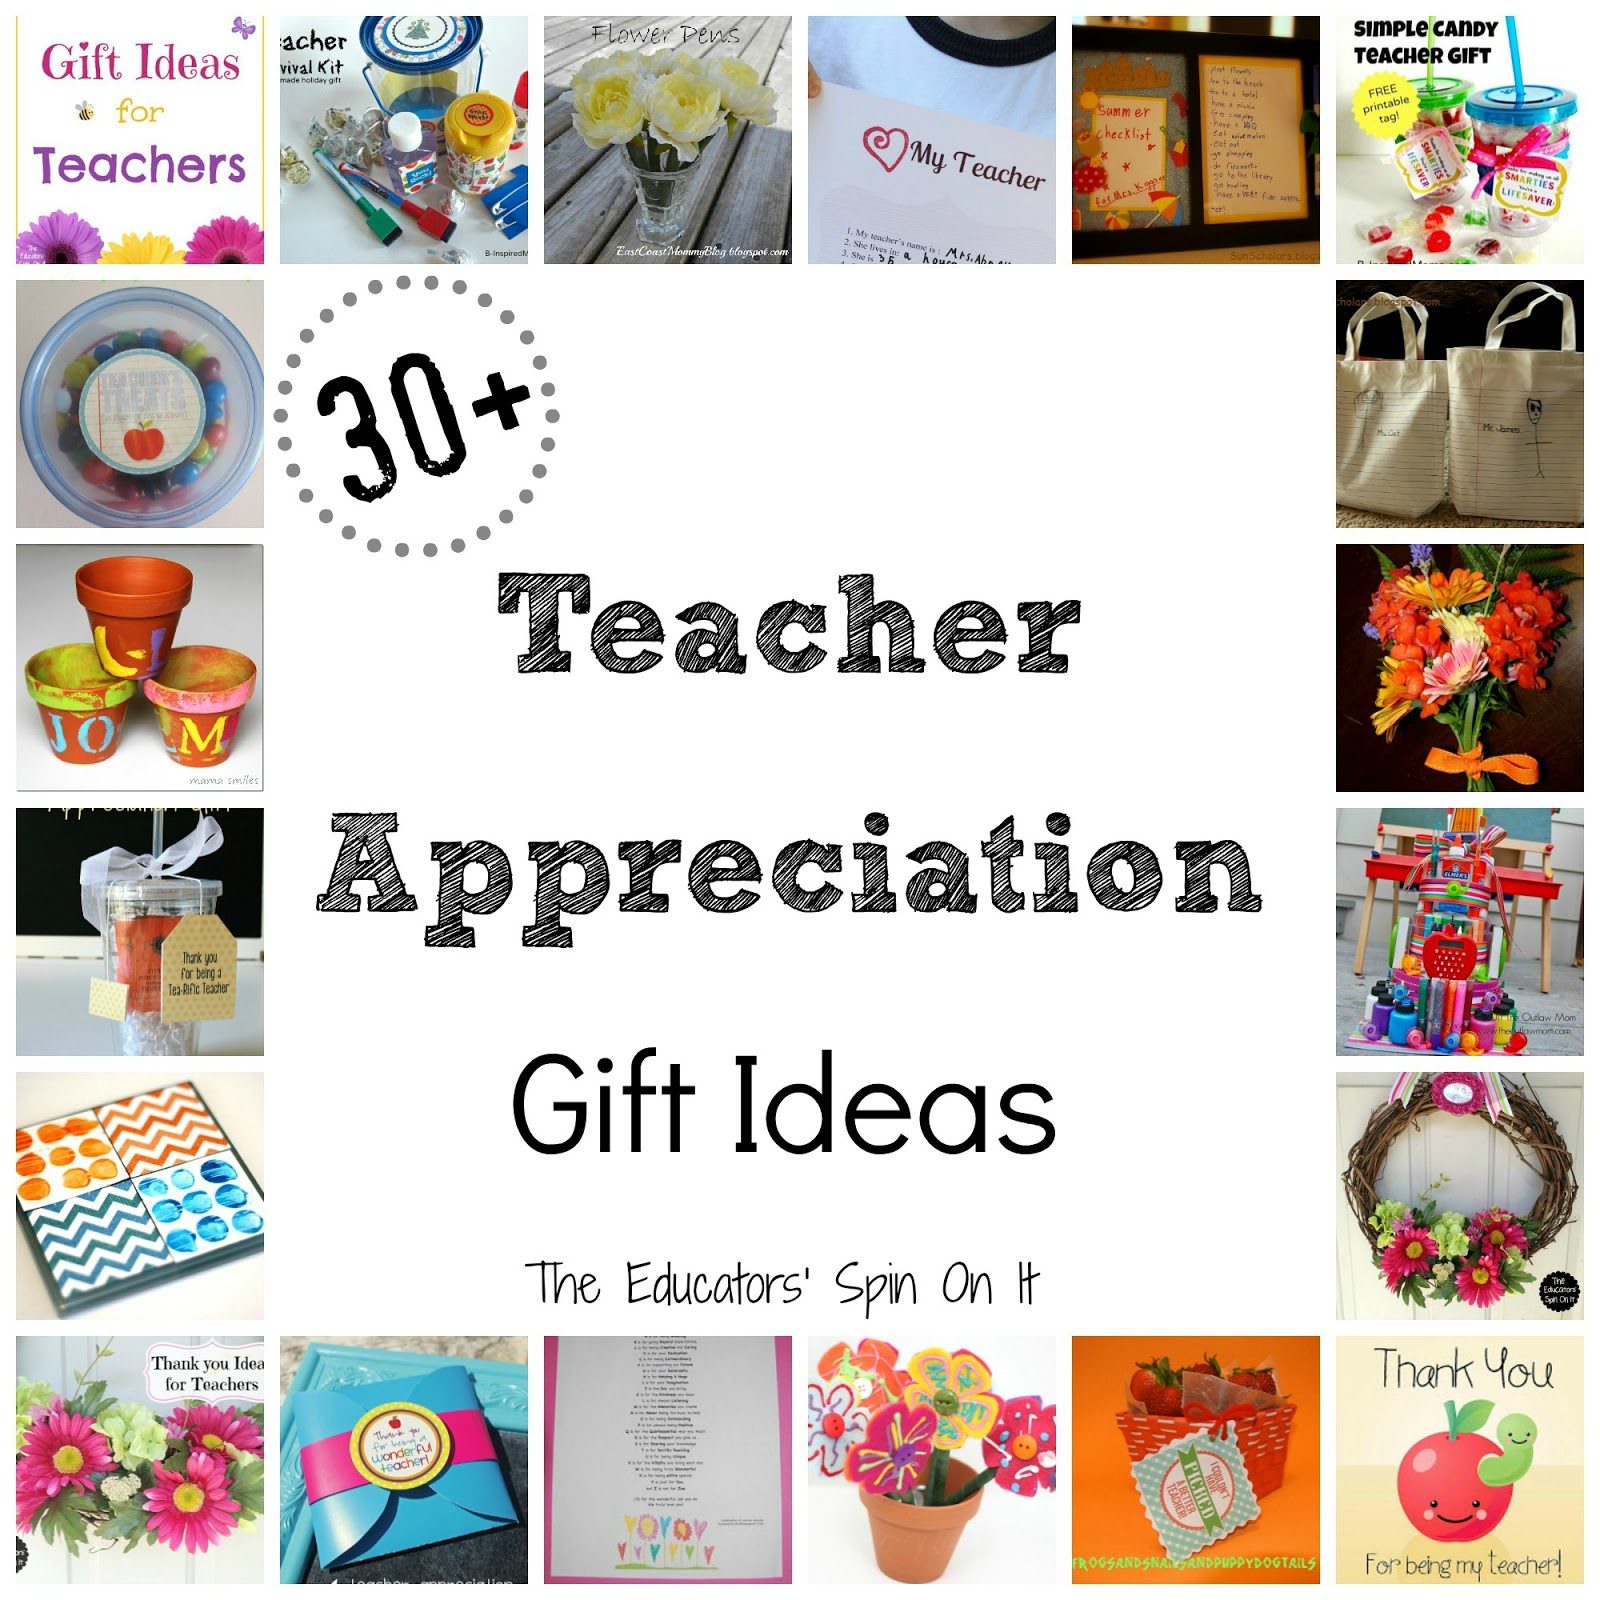 Are you ready with a gift idea to give to your childu0027s teacher? Hereu0027s 30+ Teacher Gift Ideas that are budget friendly and easy to make! Come take a peek!  sc 1 st  The Educatorsu0027 Spin On It : thank you gift ideas for teachers - princetonregatta.org